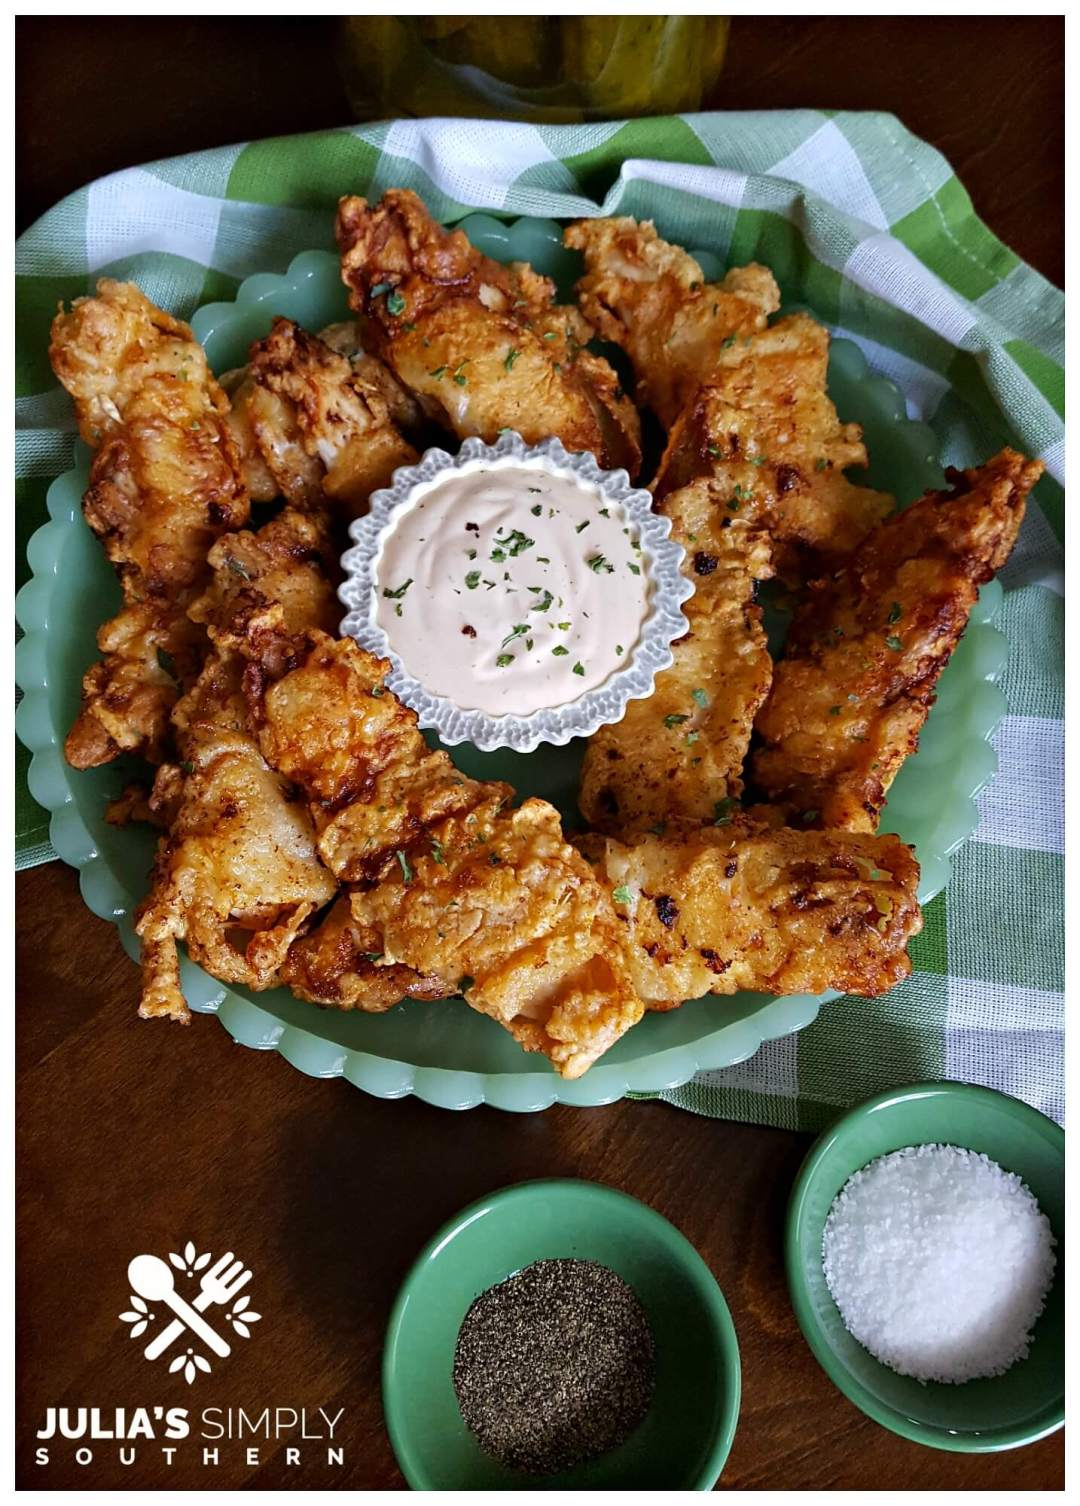 Delicious and flavorful dill pickle fried chicken breast tenders served on green jadeite glassware